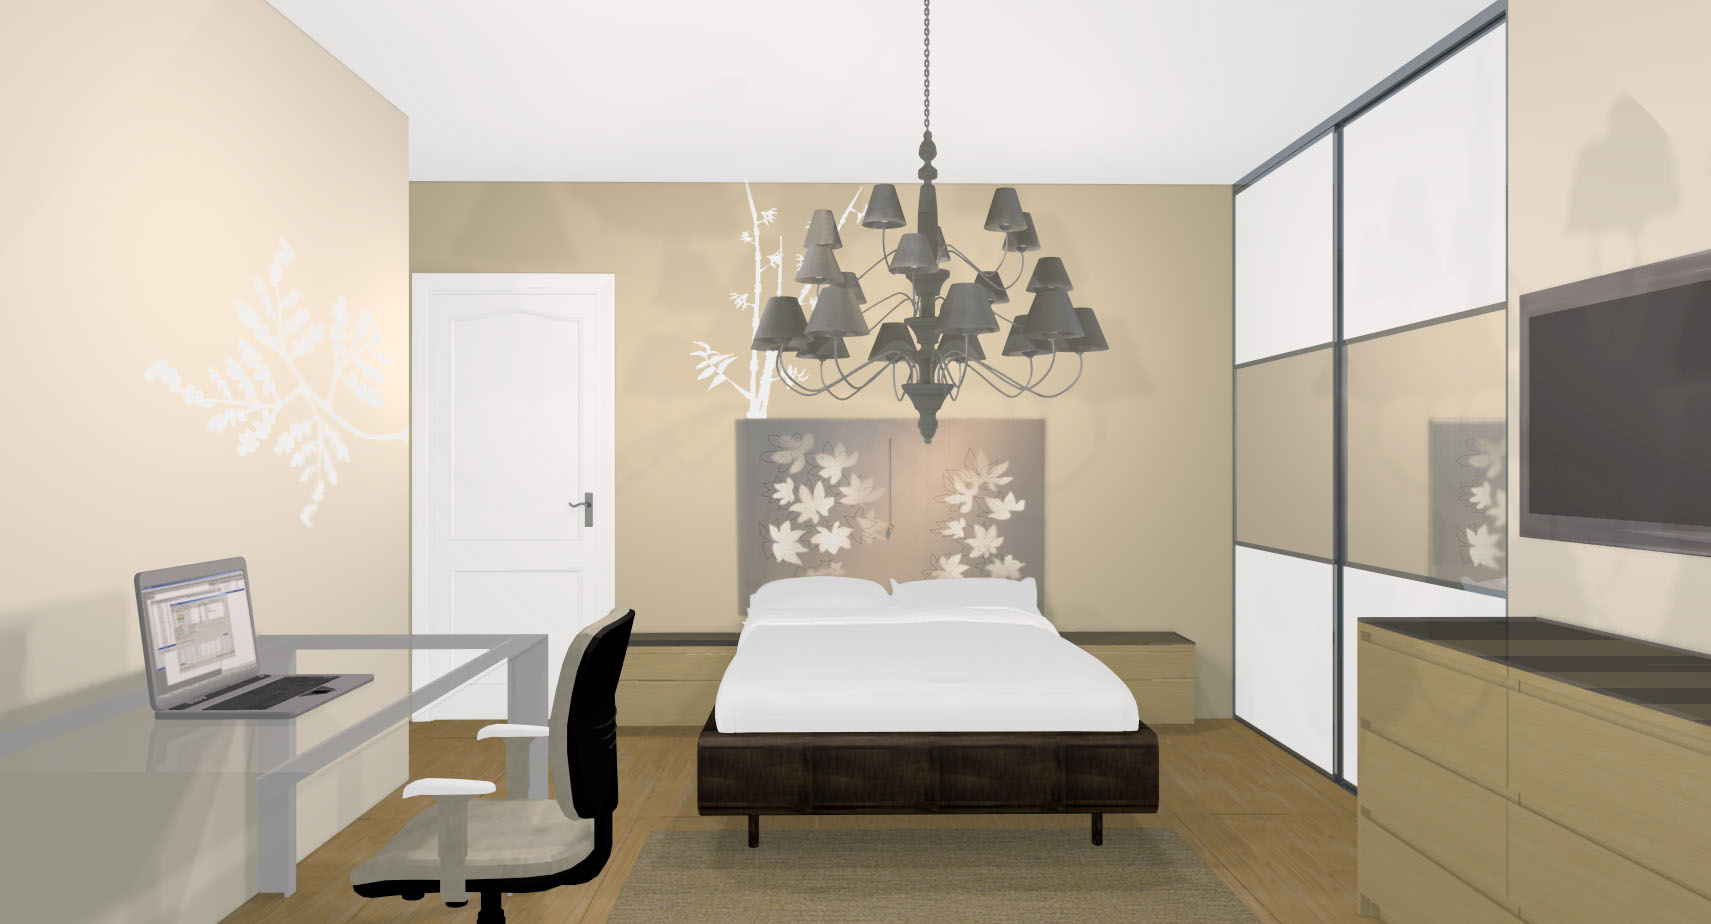 Couleur chambre parent meilleures images d 39 inspiration for Decoration chambre parent